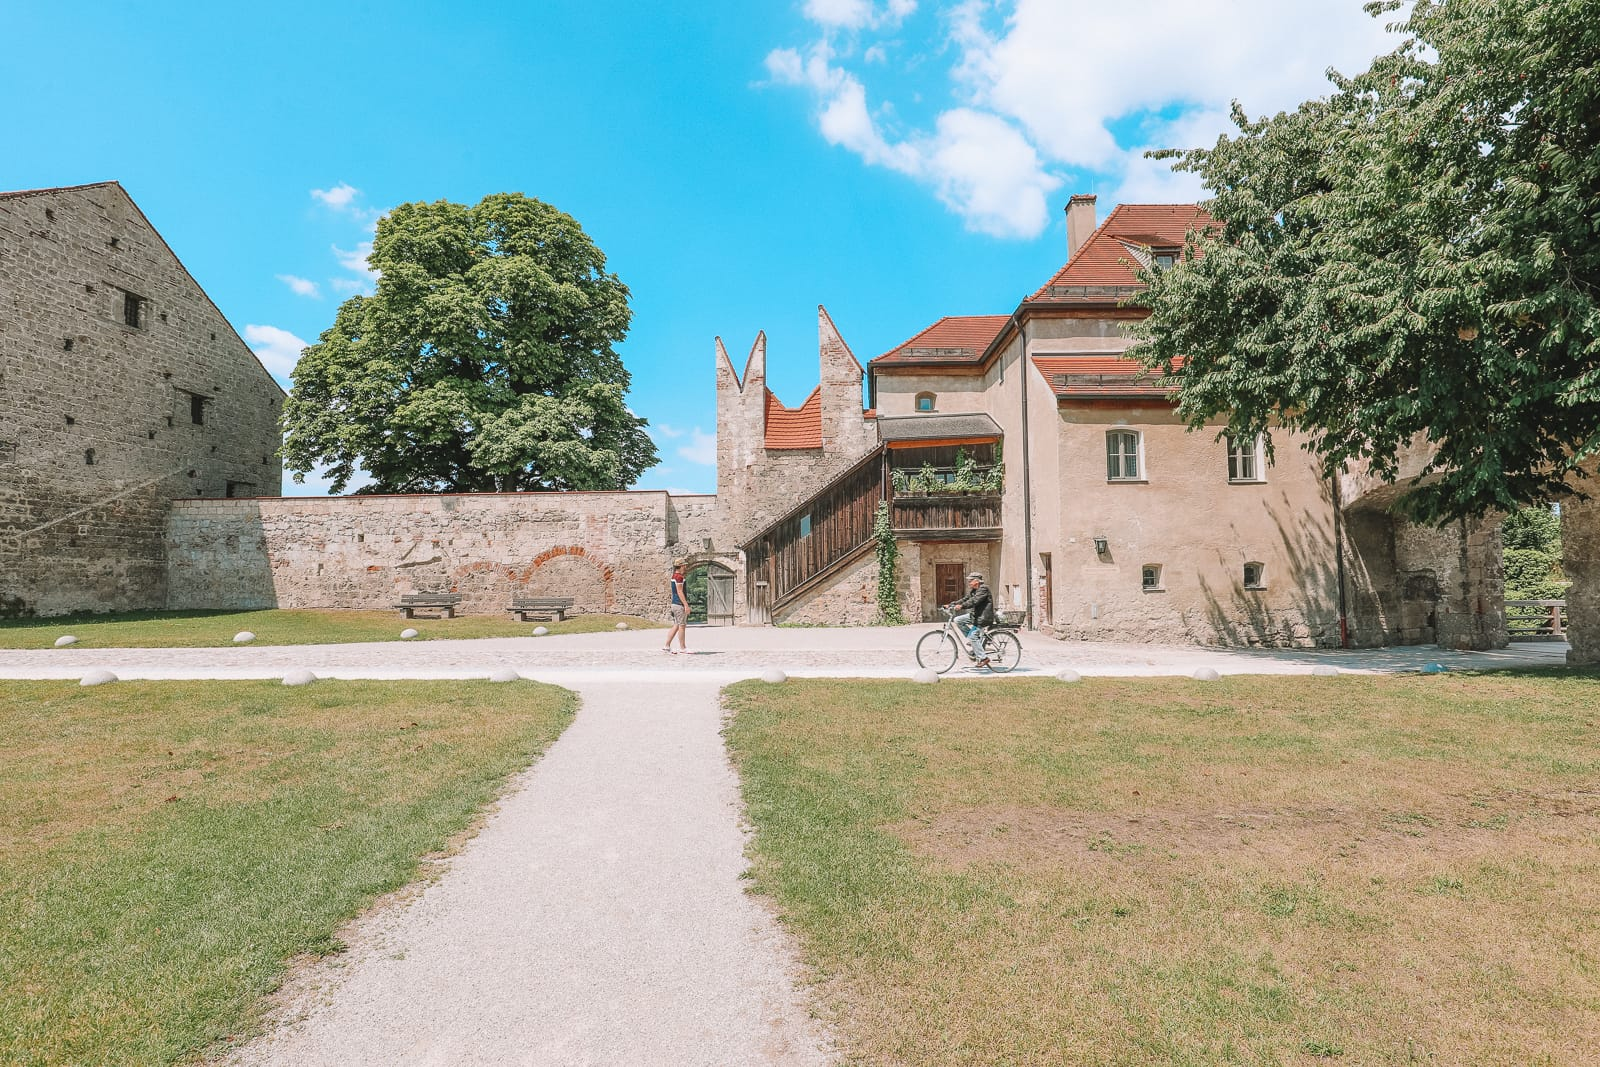 Burghausen Castle - The Longest Castle In The Entire World! (64)